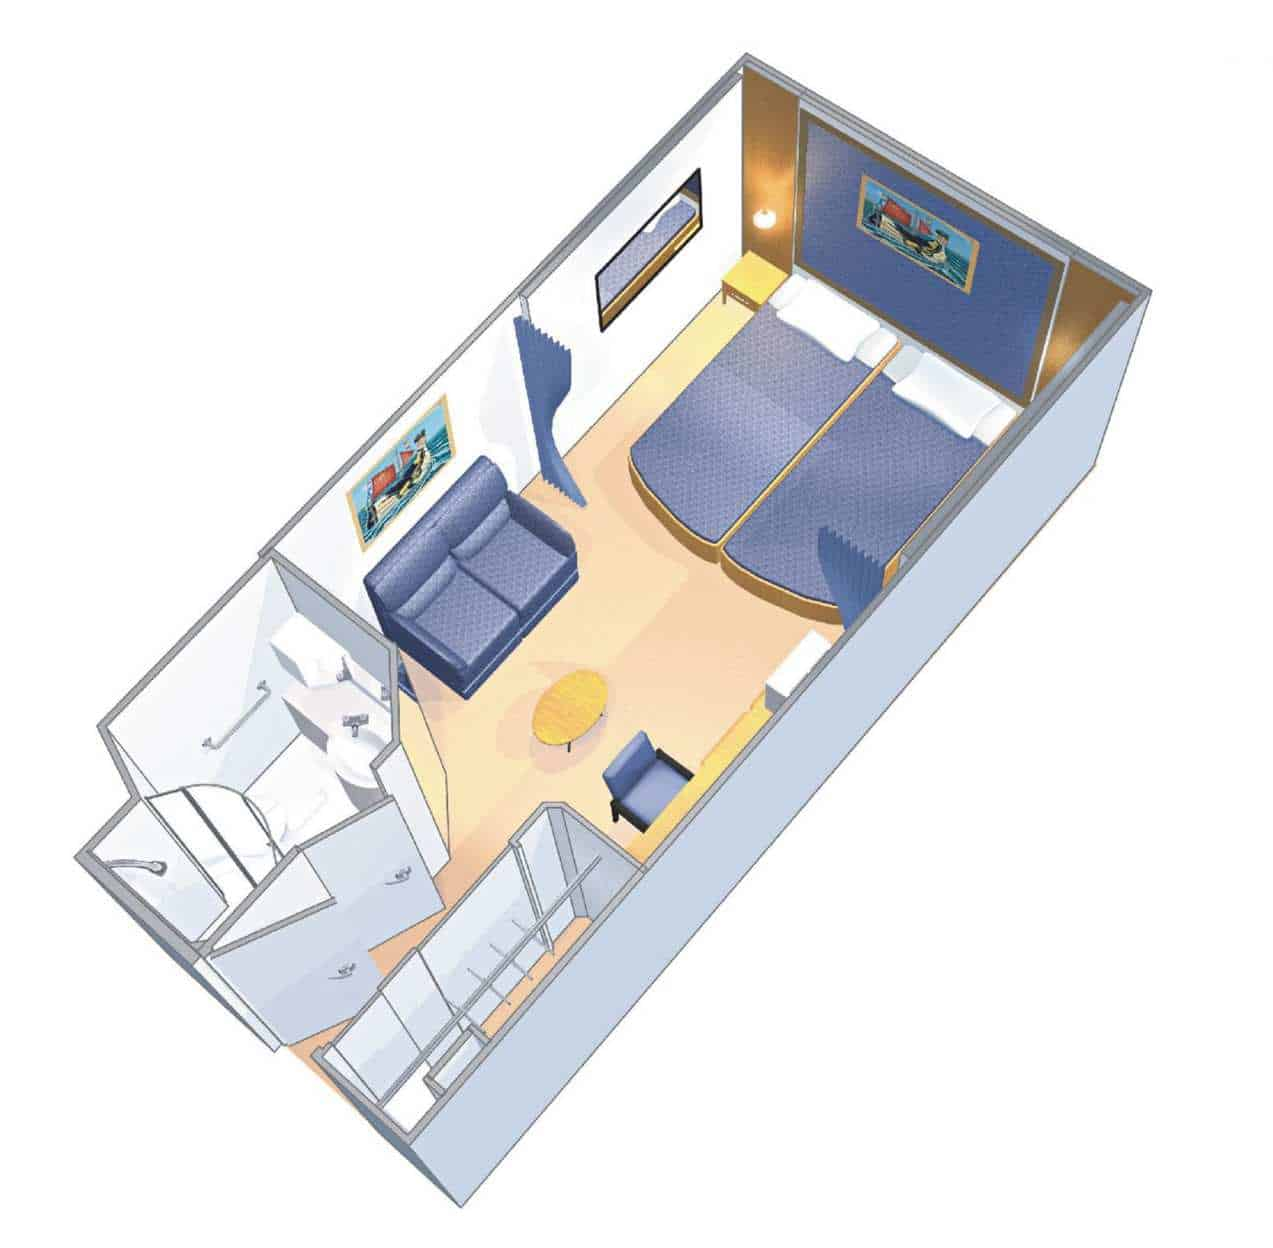 Interior_StRm_FloorPlan